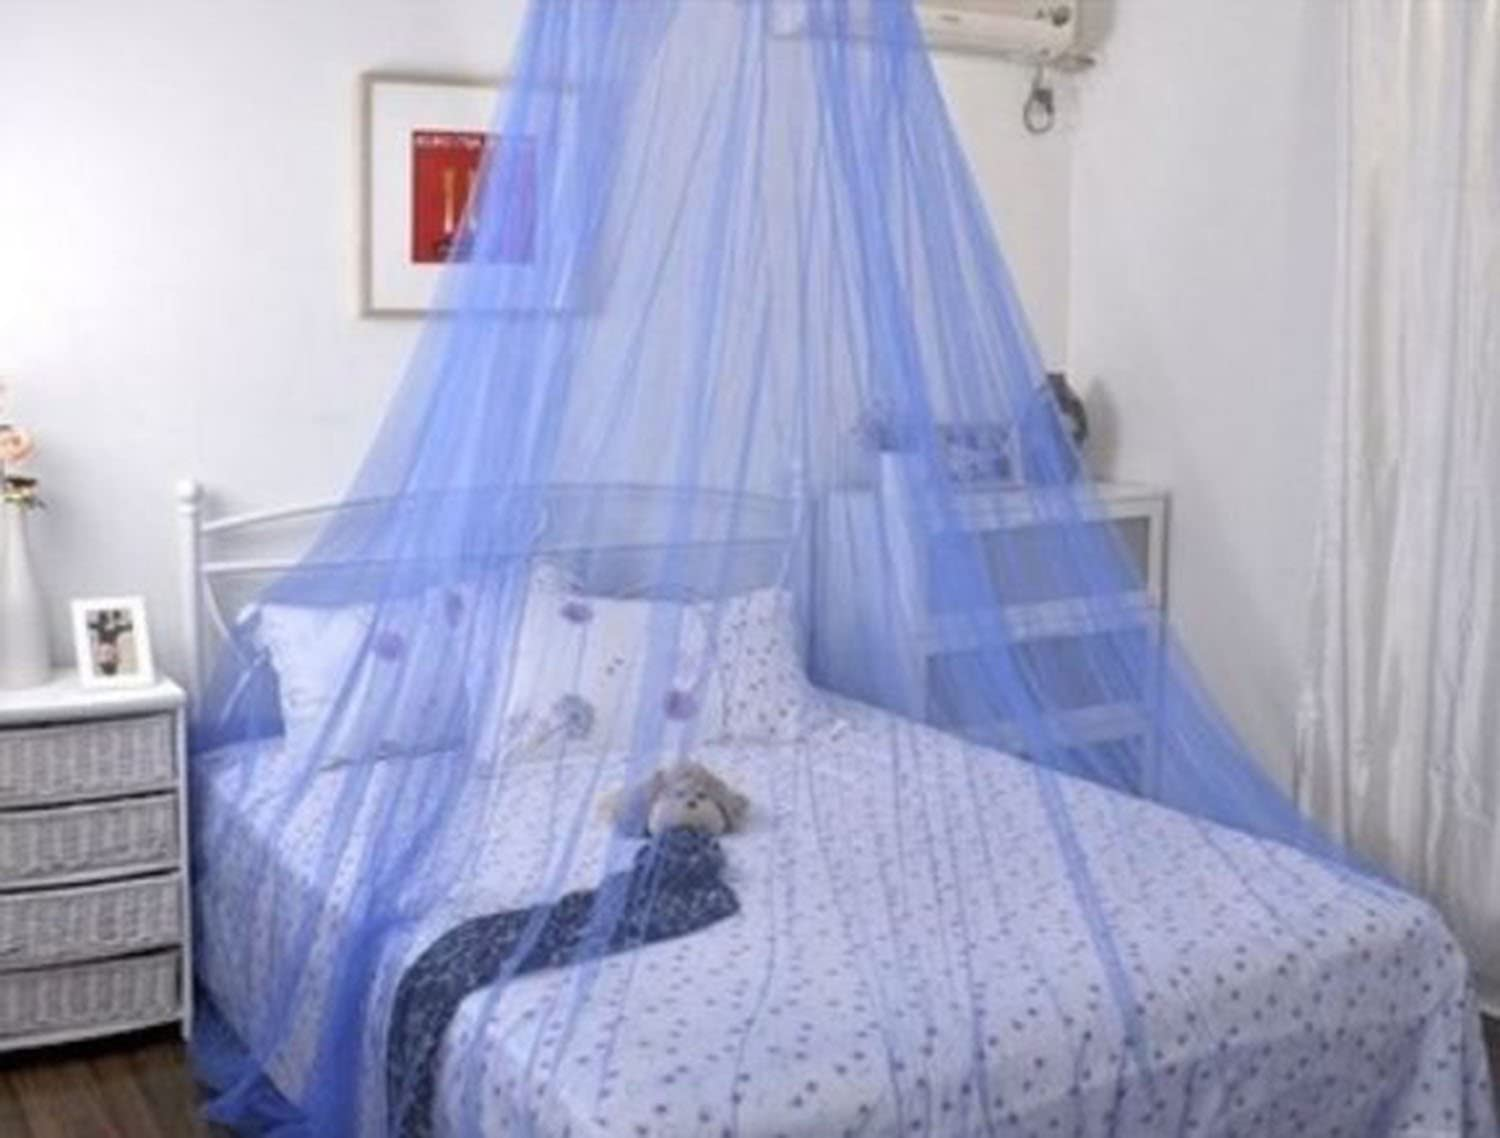 Blue Bow Netting Curtains Mosquito Net for Double Single Bed Canopy with Internal Loop Round Fly Screen